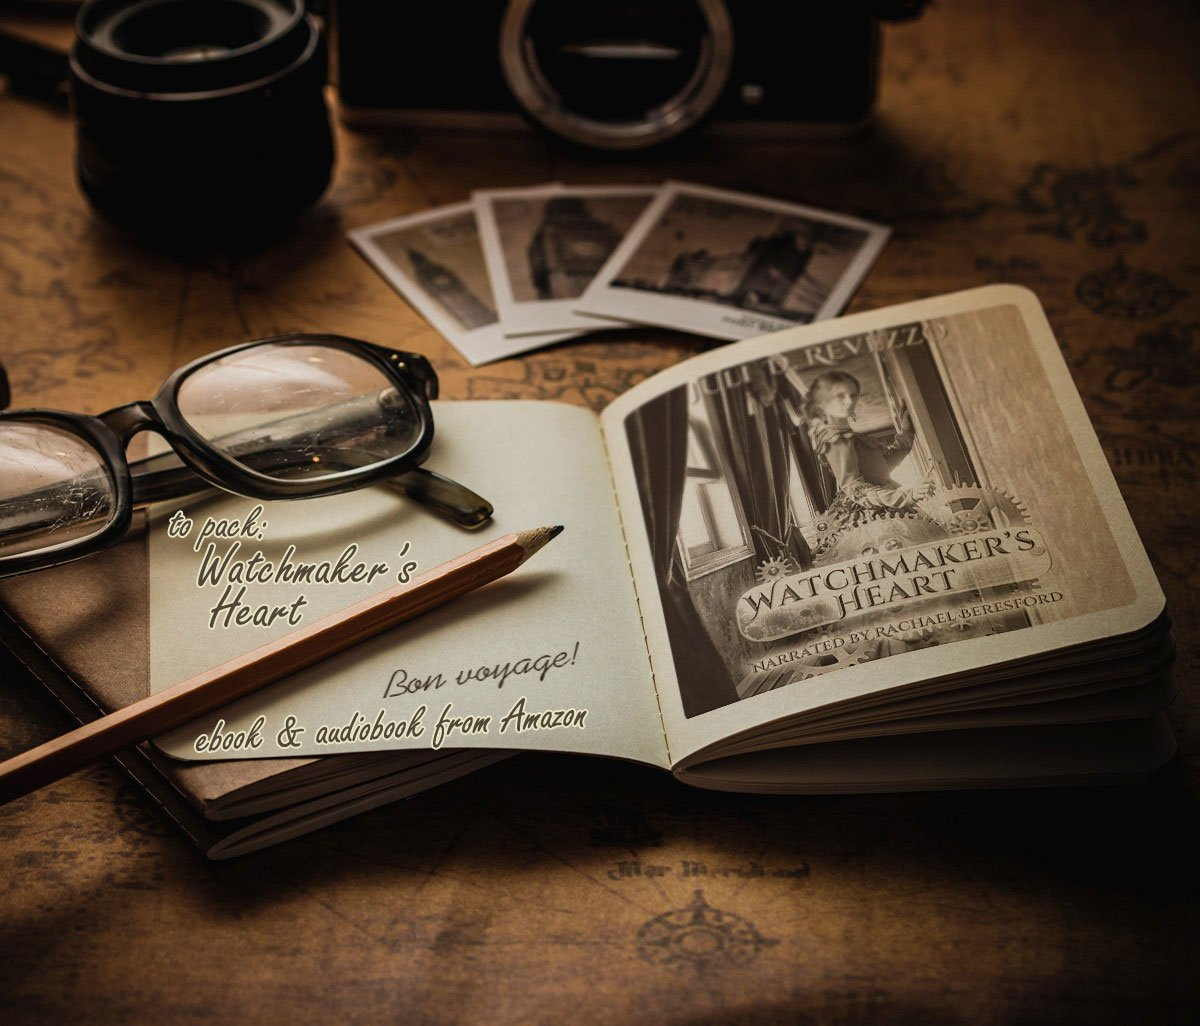 Phoebe's shocking invention might cause a stir. Check out WATCHMAKER'S HEART #audiobook https://t.co/jK0gPbeCZY  Kindle: https://t.co/THnWt5jZF6  #free w/ #AmazonPrime #Victorian #Romance #steampunk #authorRT Pls RT